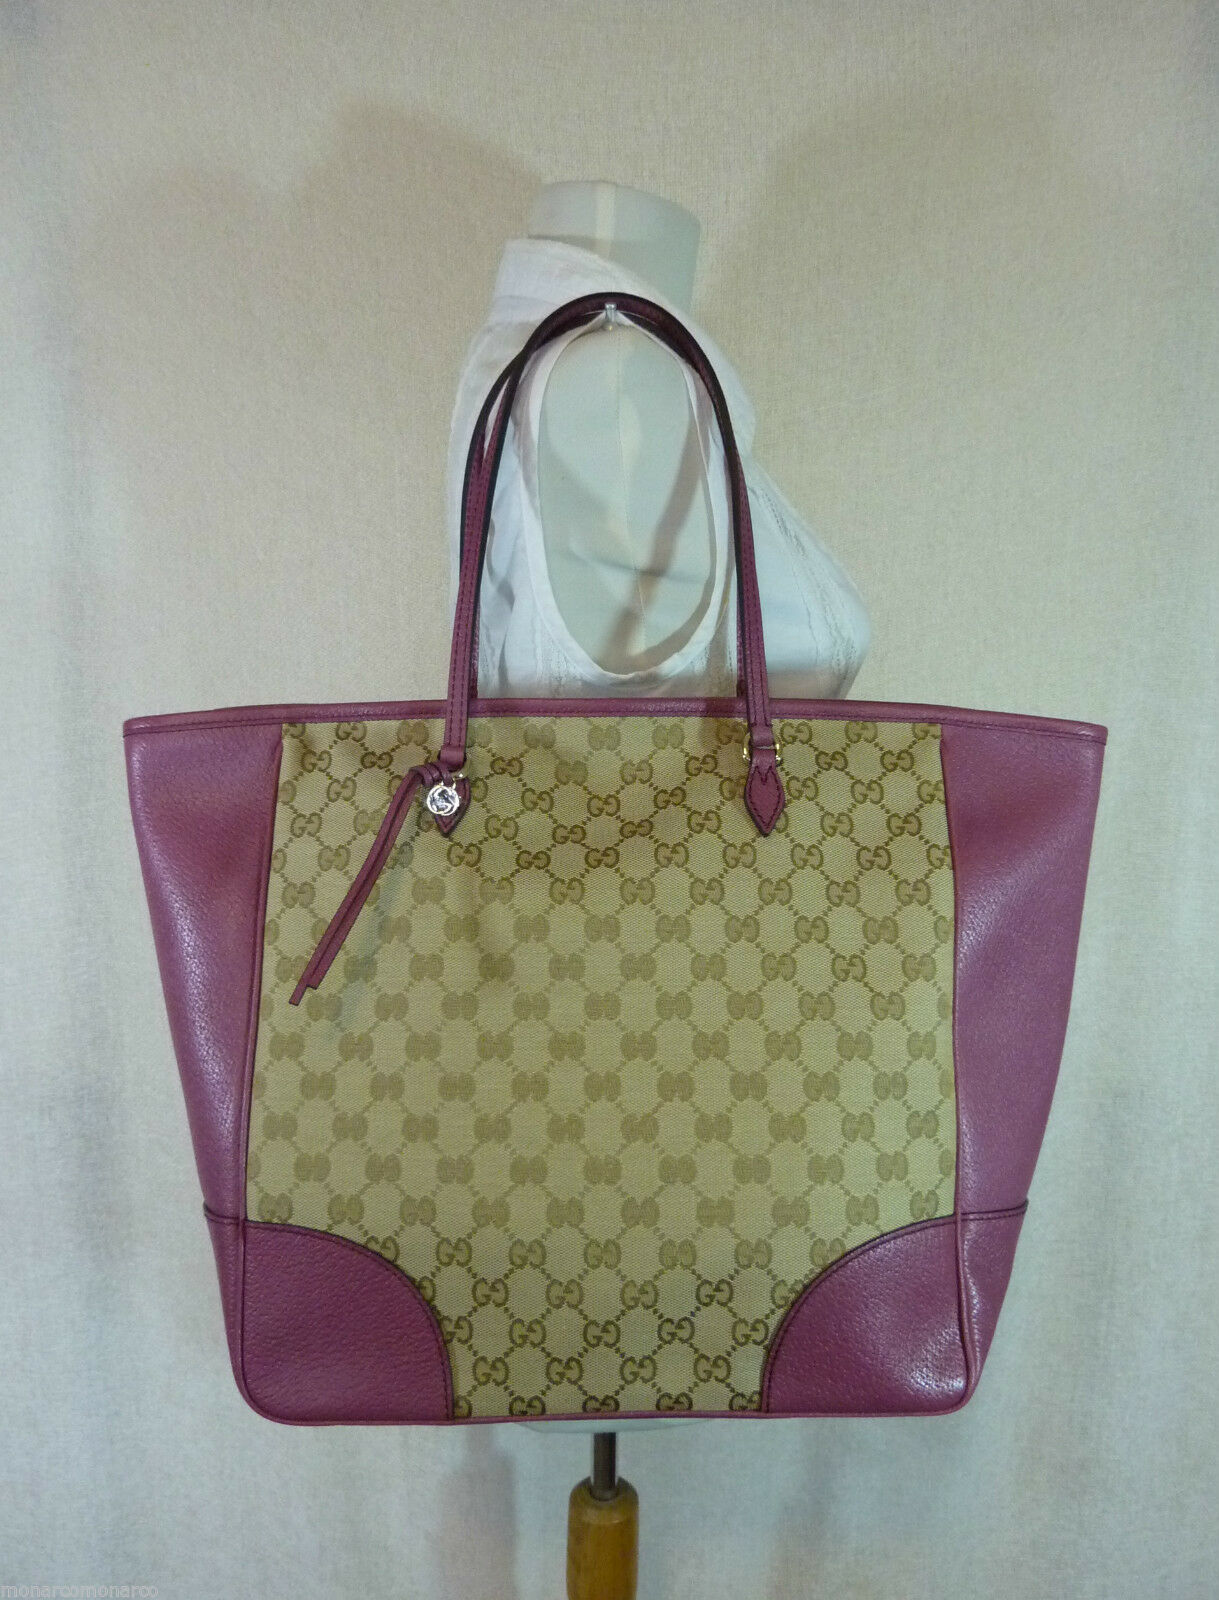 AUTH NWOT GUCCI Beige/Ebony/Dusty Rose Canvas/Leather Bree GG Tote